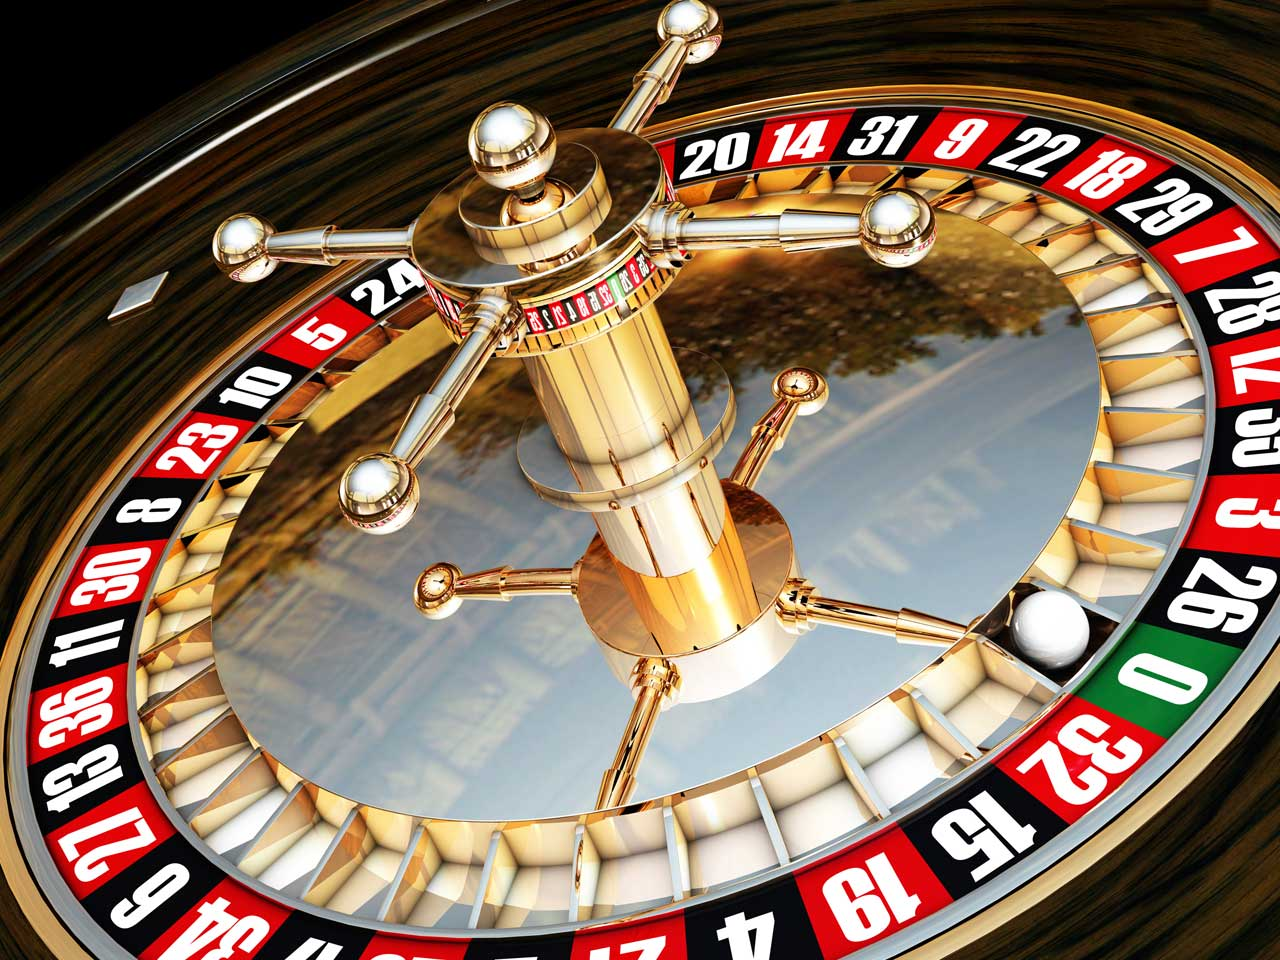 Roulette wheel to represent gambling and risk